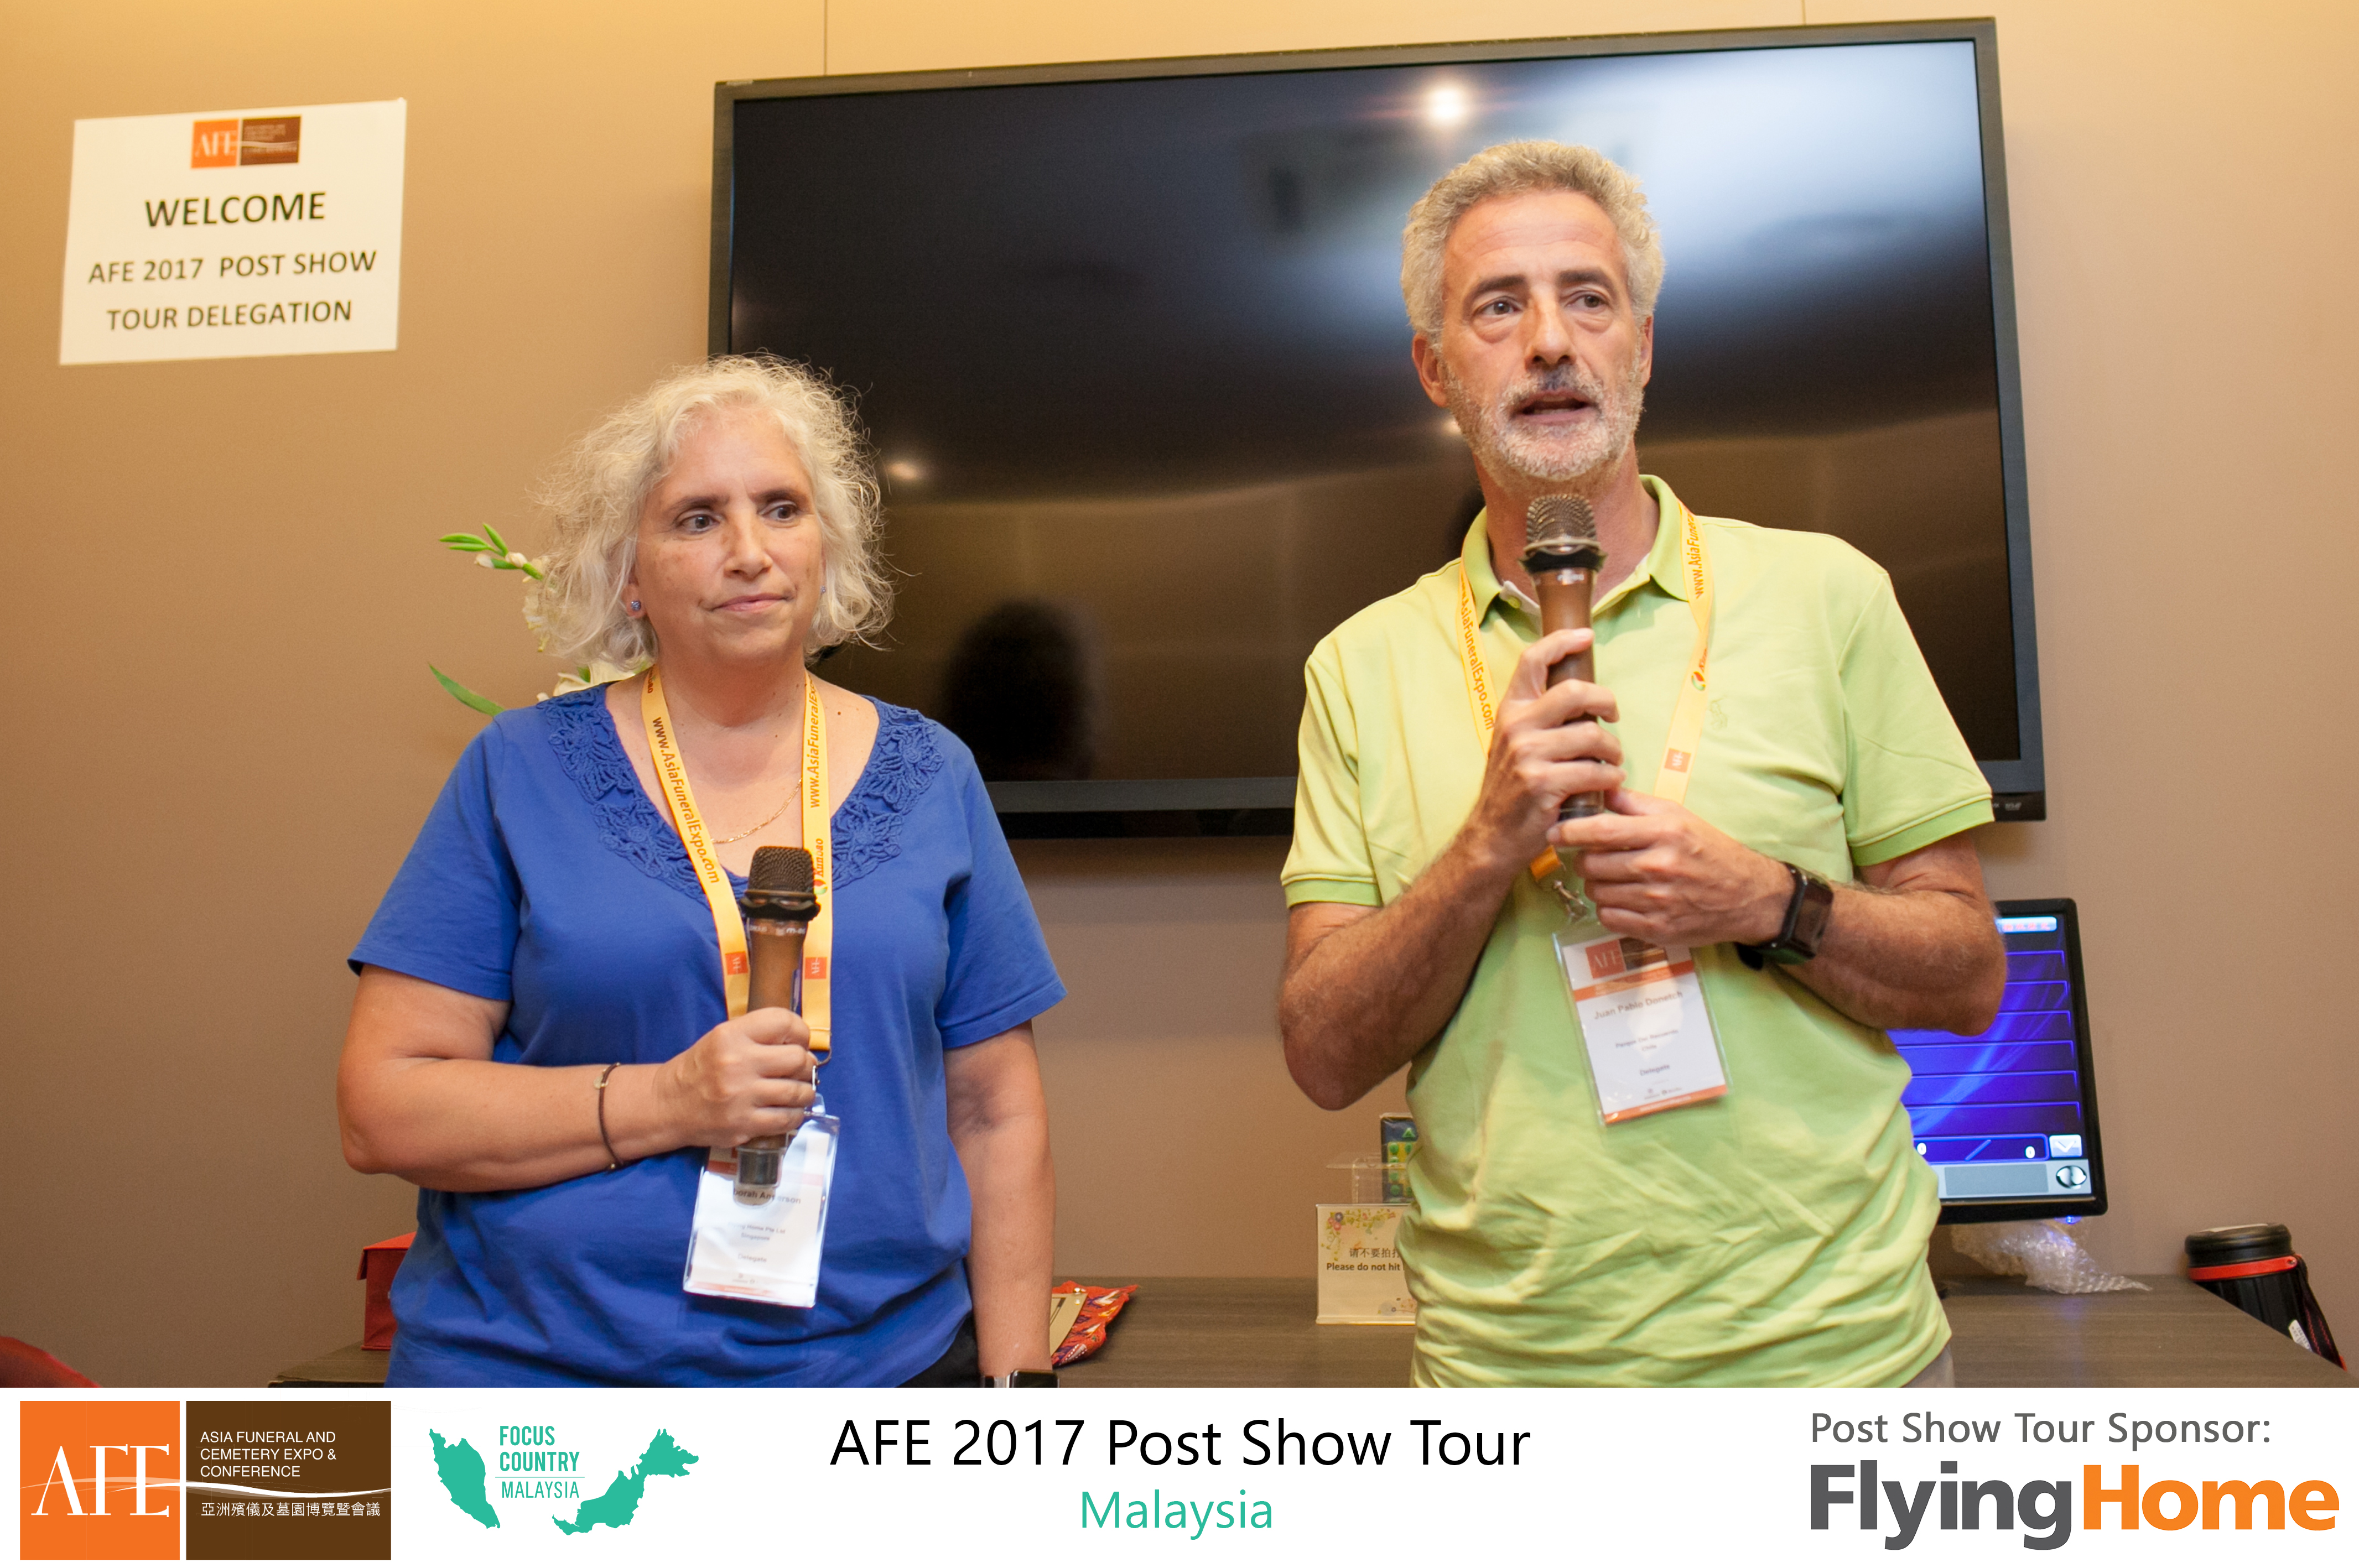 AFE Post Show Tour 2017 Day 1 - 15